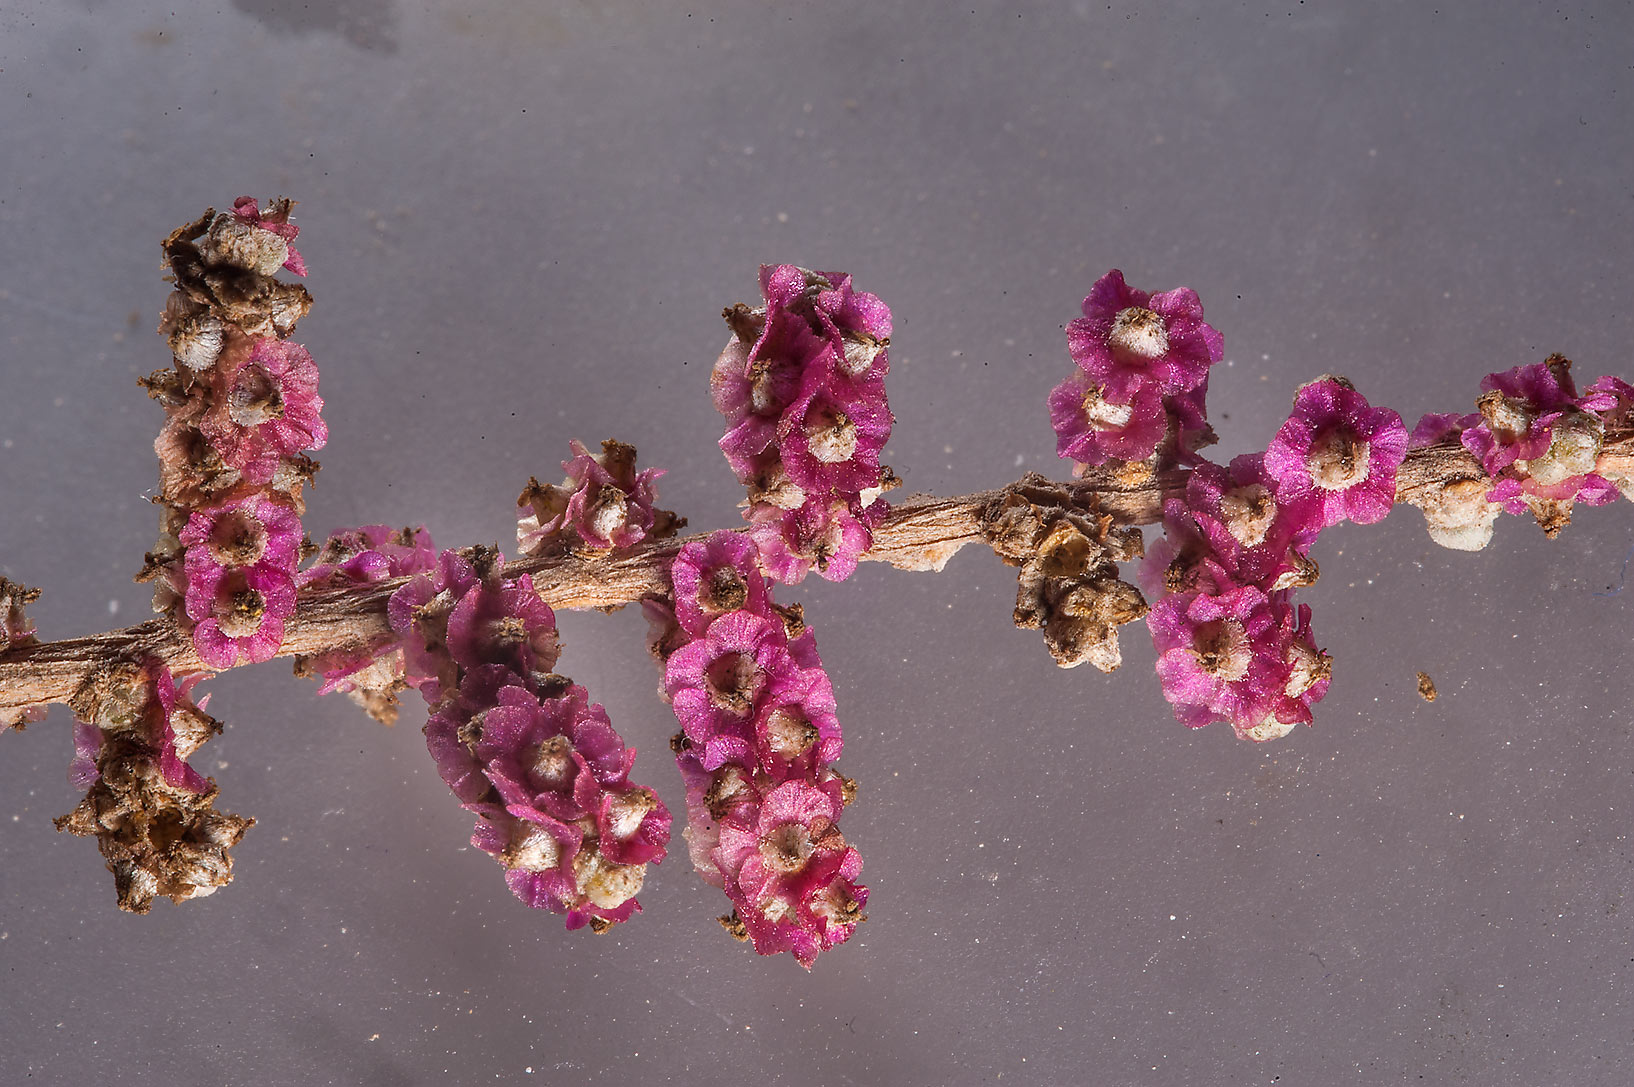 Salsola cyclophylla with pink winged fruits taken from northern Dukhan. Qatar